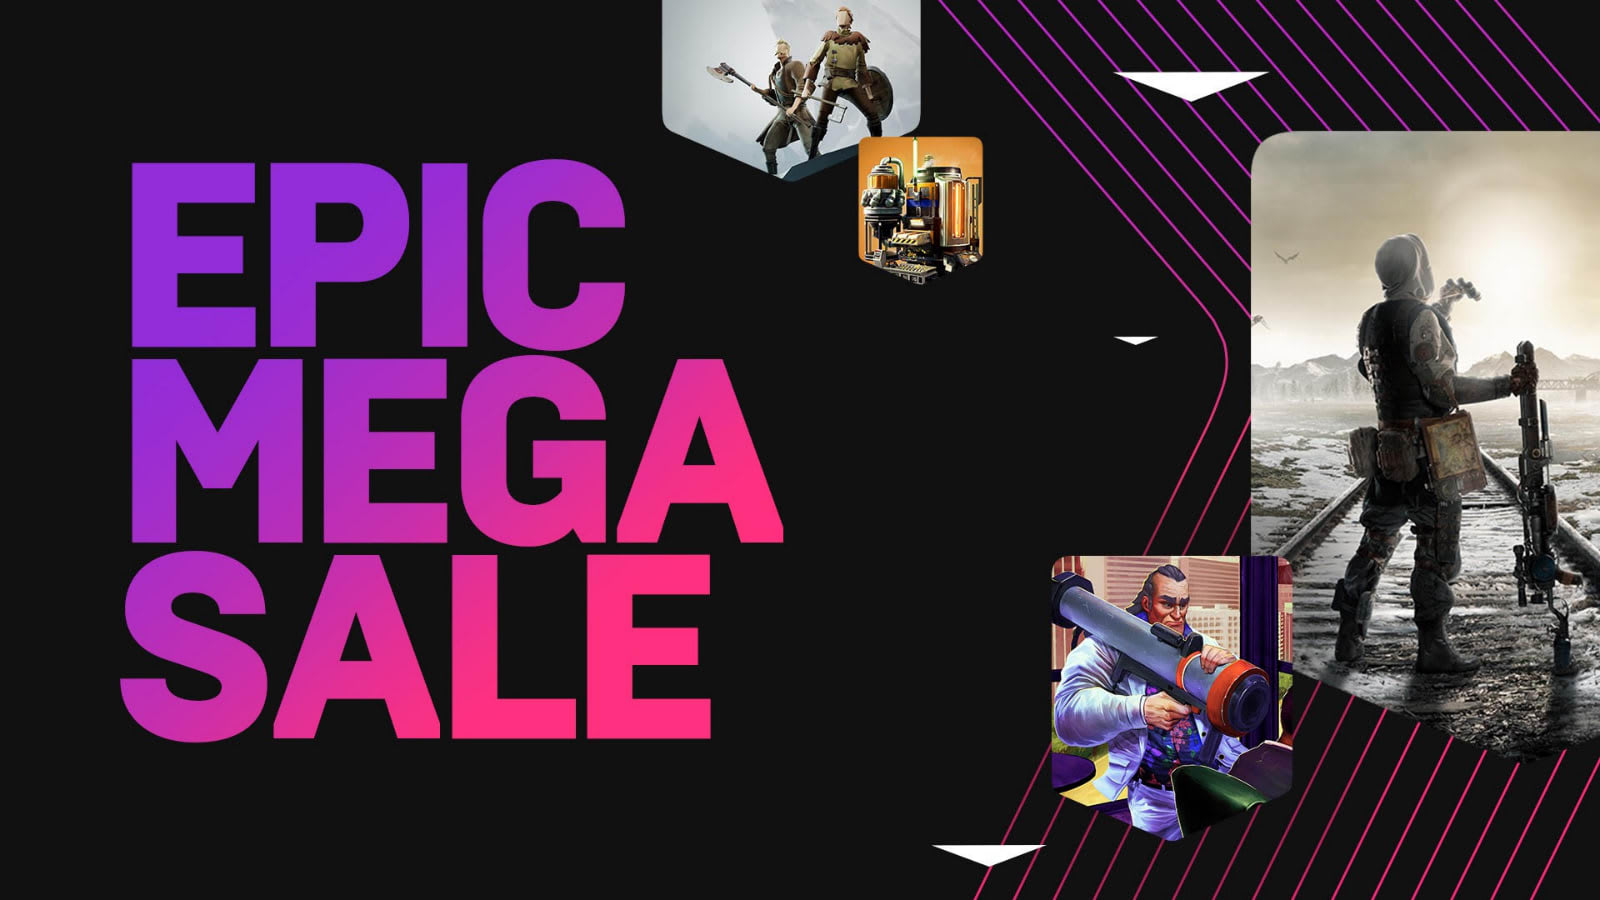 Epic Games offers up to 75 percent off select games in its